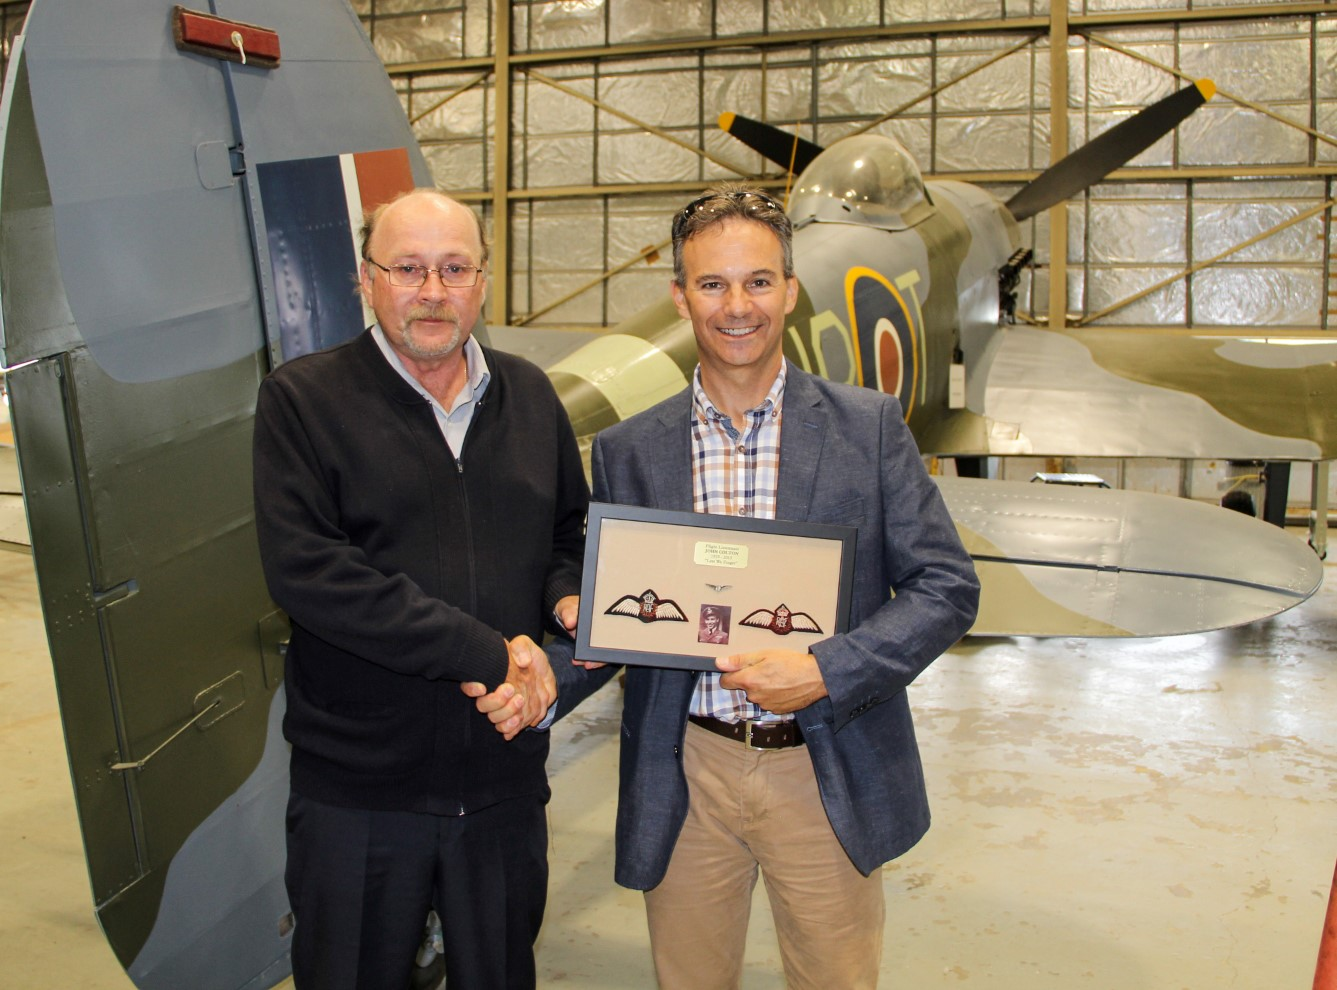 At the Canada Aviation and Space Museum, Mr. John Colton, Jr. (left), makes a presentation to Major (retired) Francis Mercier for his contribution to the creation of a work of art honouring Flight Lieutenant John Colton. PHOTO: Courtesy Jean Lacroix